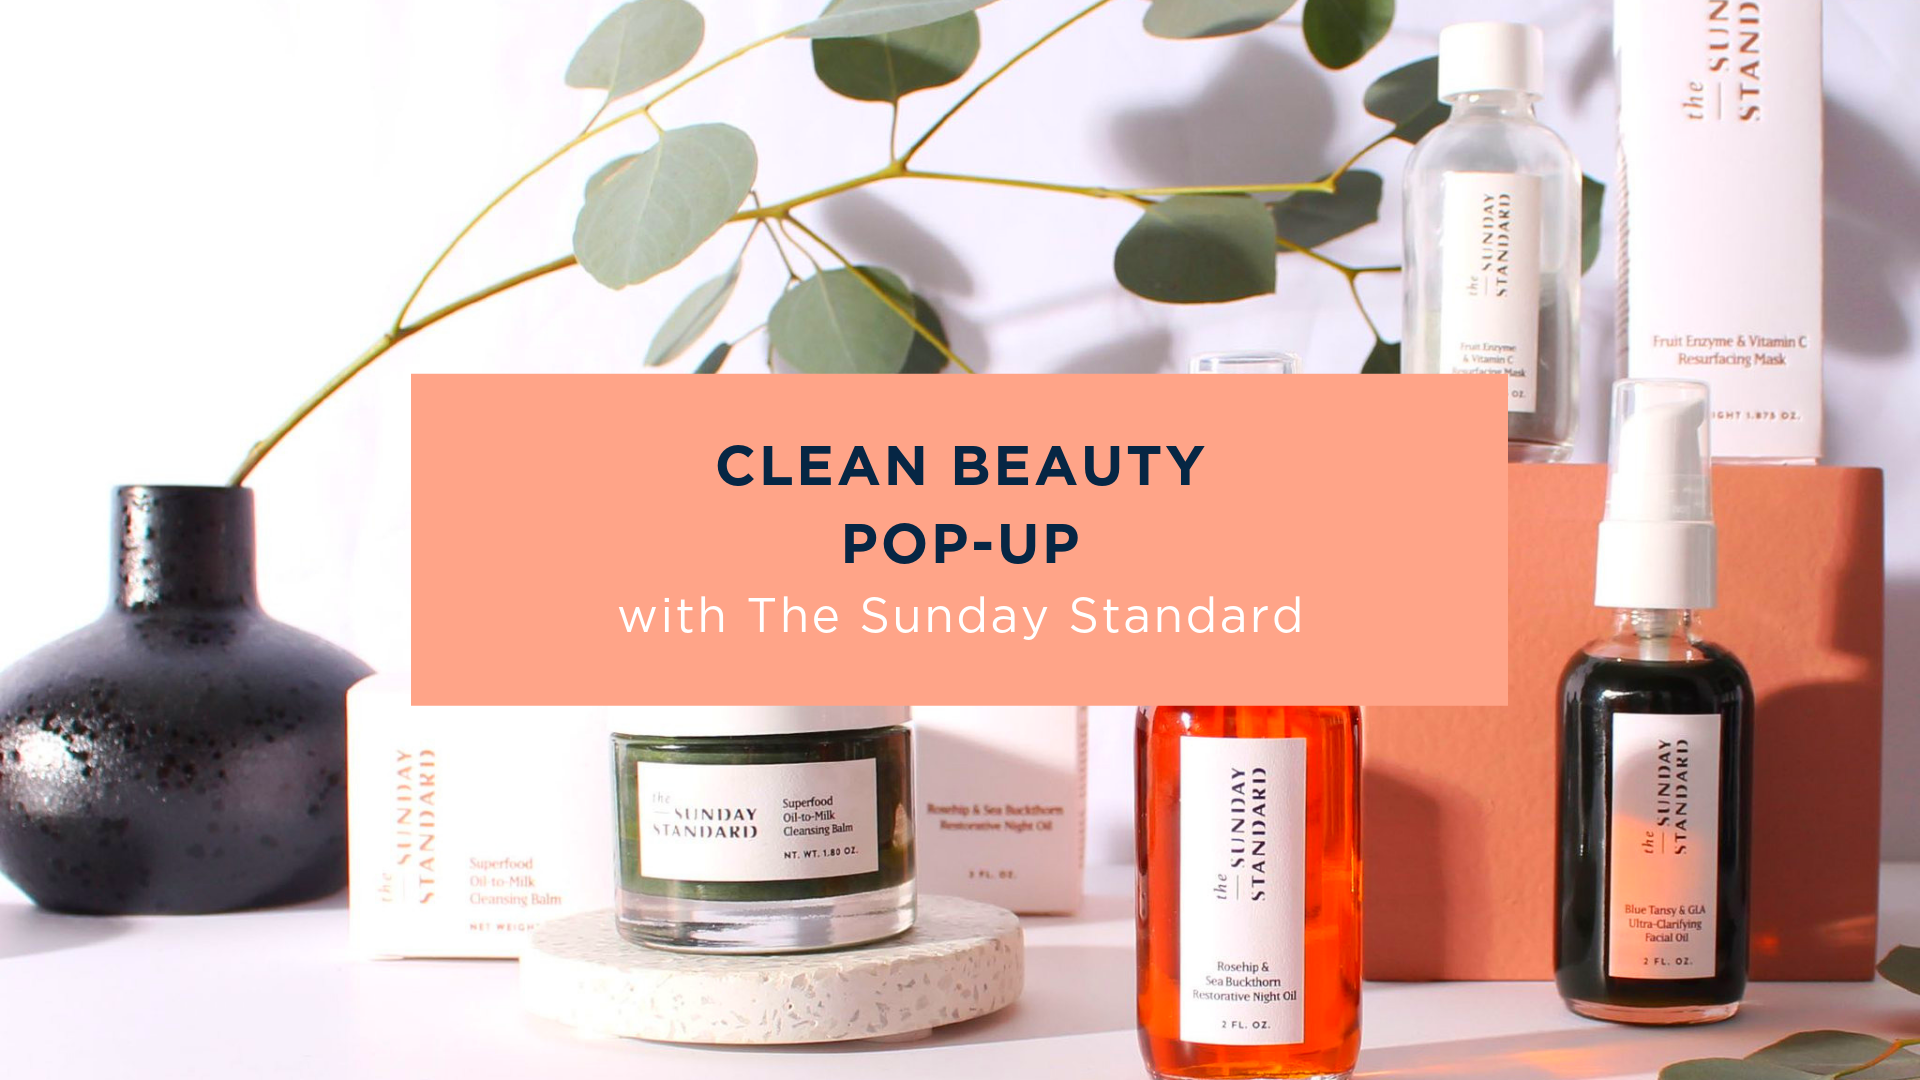 Madison clean beauty pop-up